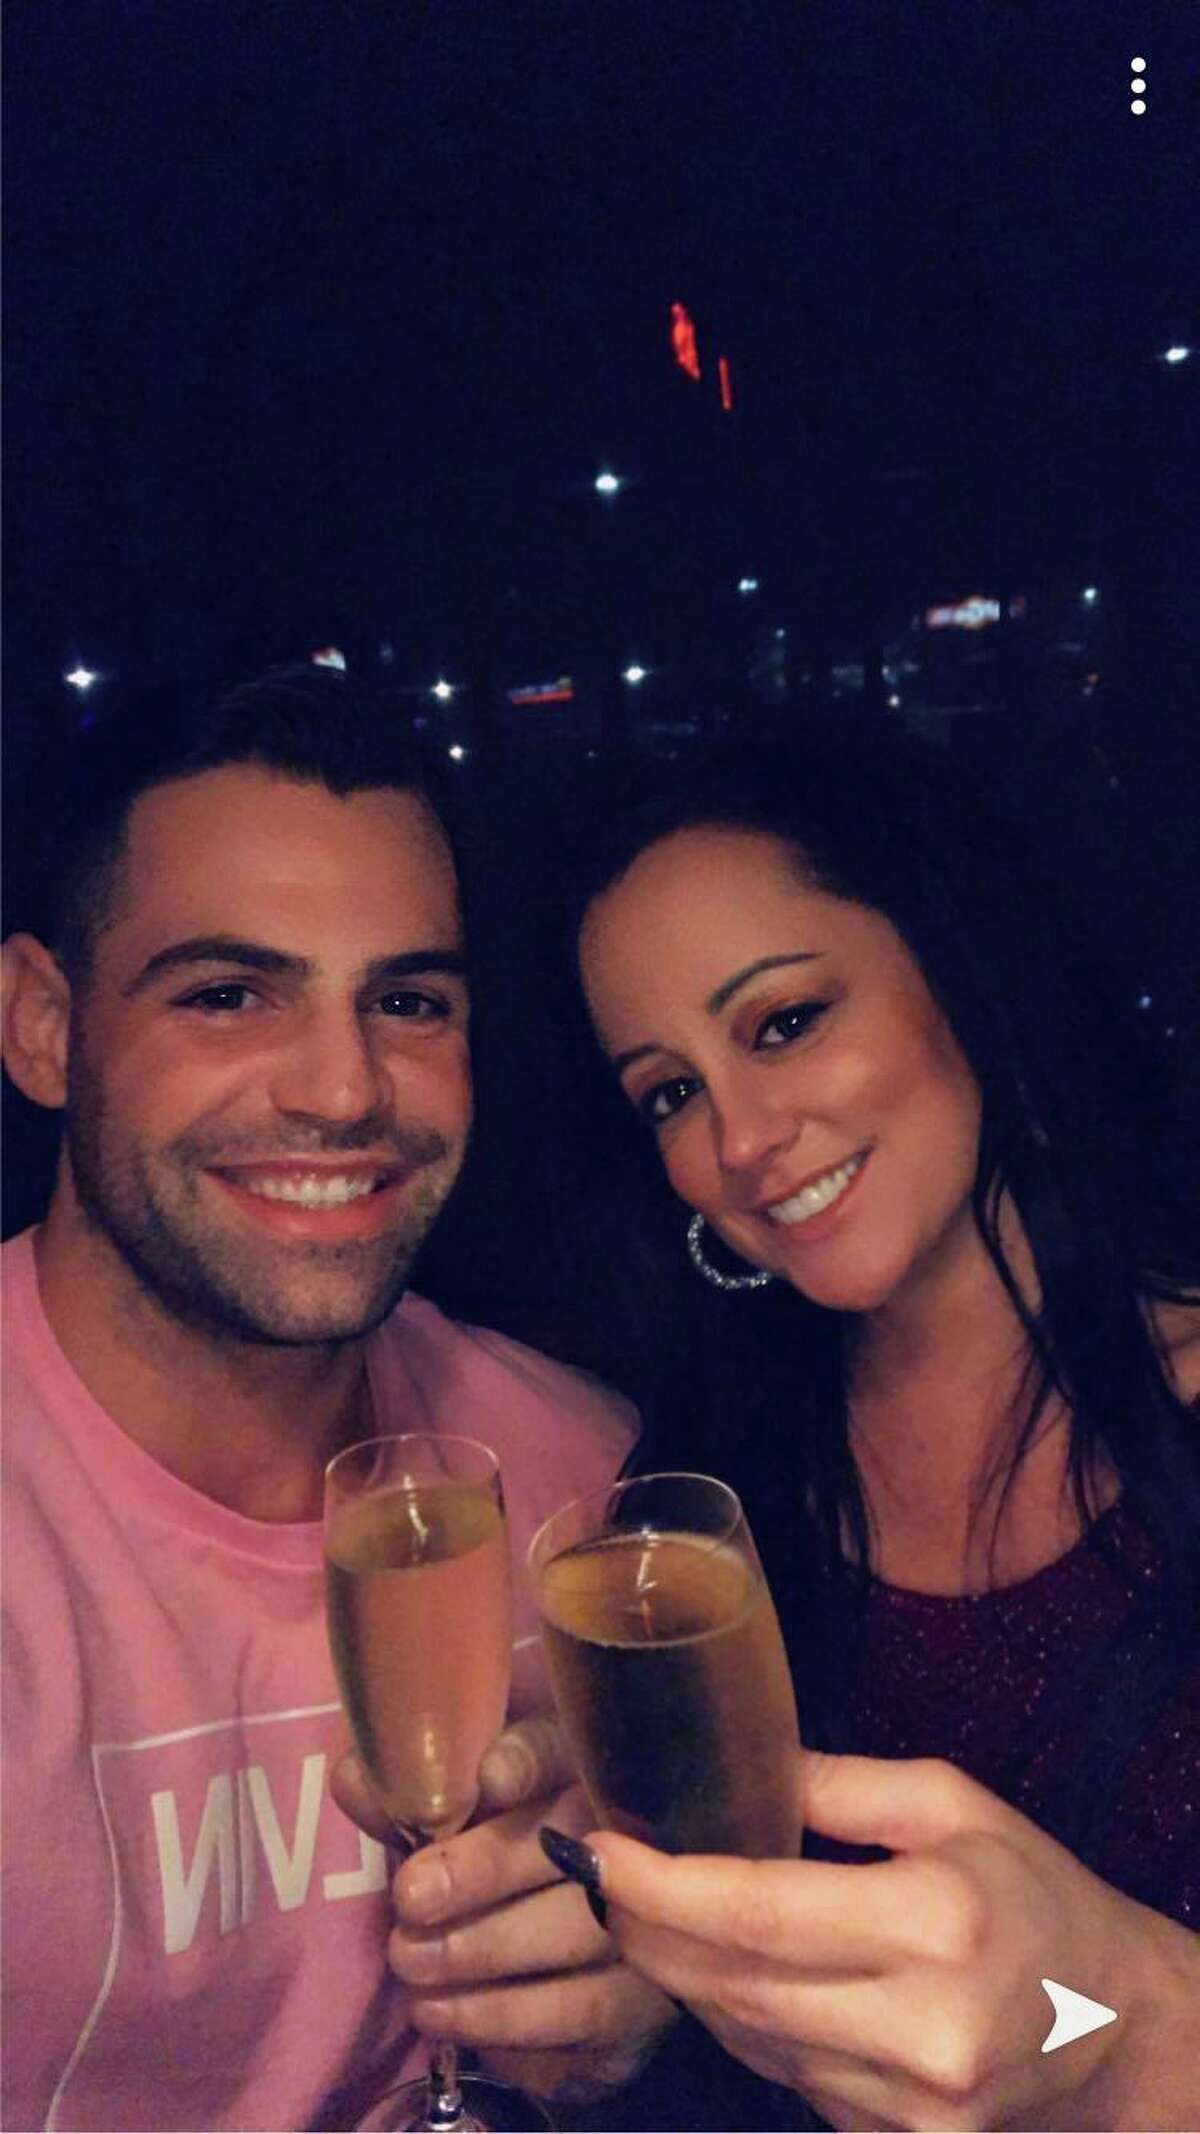 Torrington Athletic Hall of Fame selection Jacob Eanniello and significant other Tiffany Hendricks might represent a light at the end of the coronavirus tunnel for all of us.